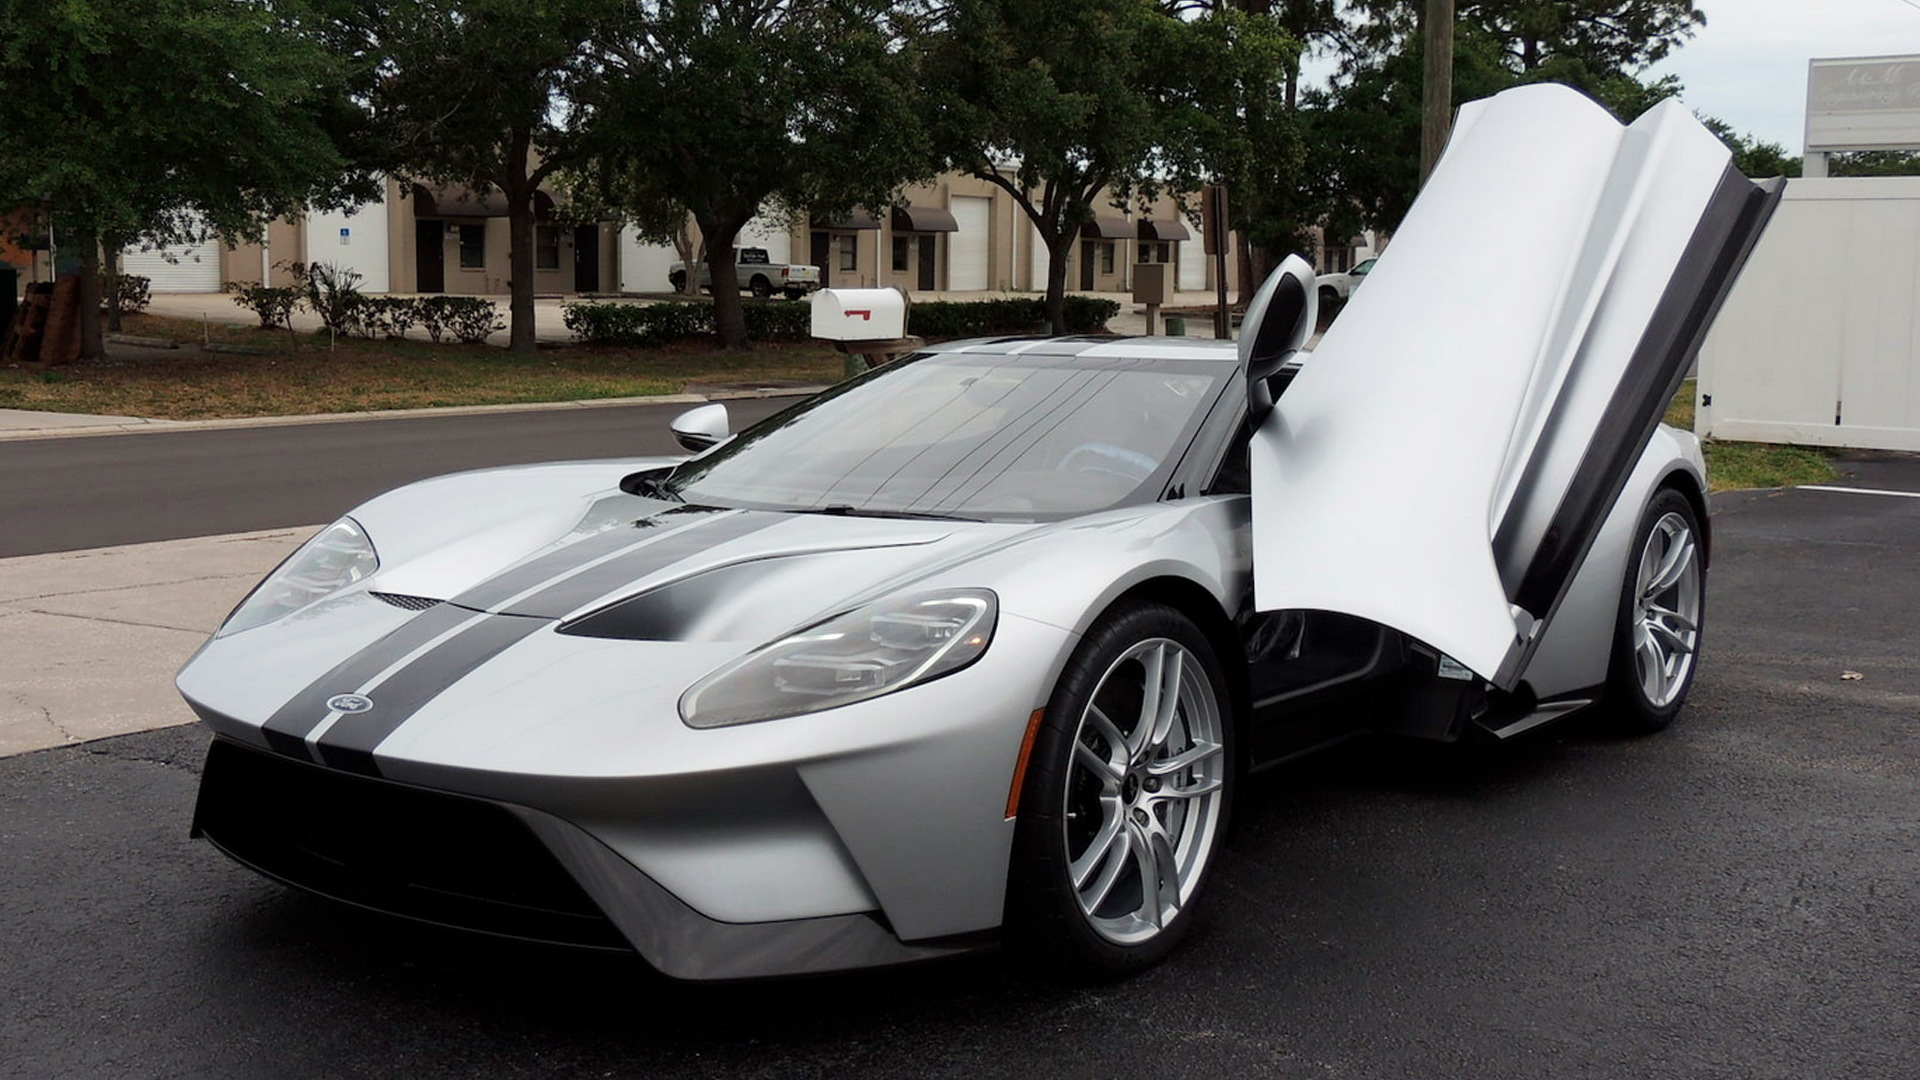 Ford Gt Sold At Mecum Auction For